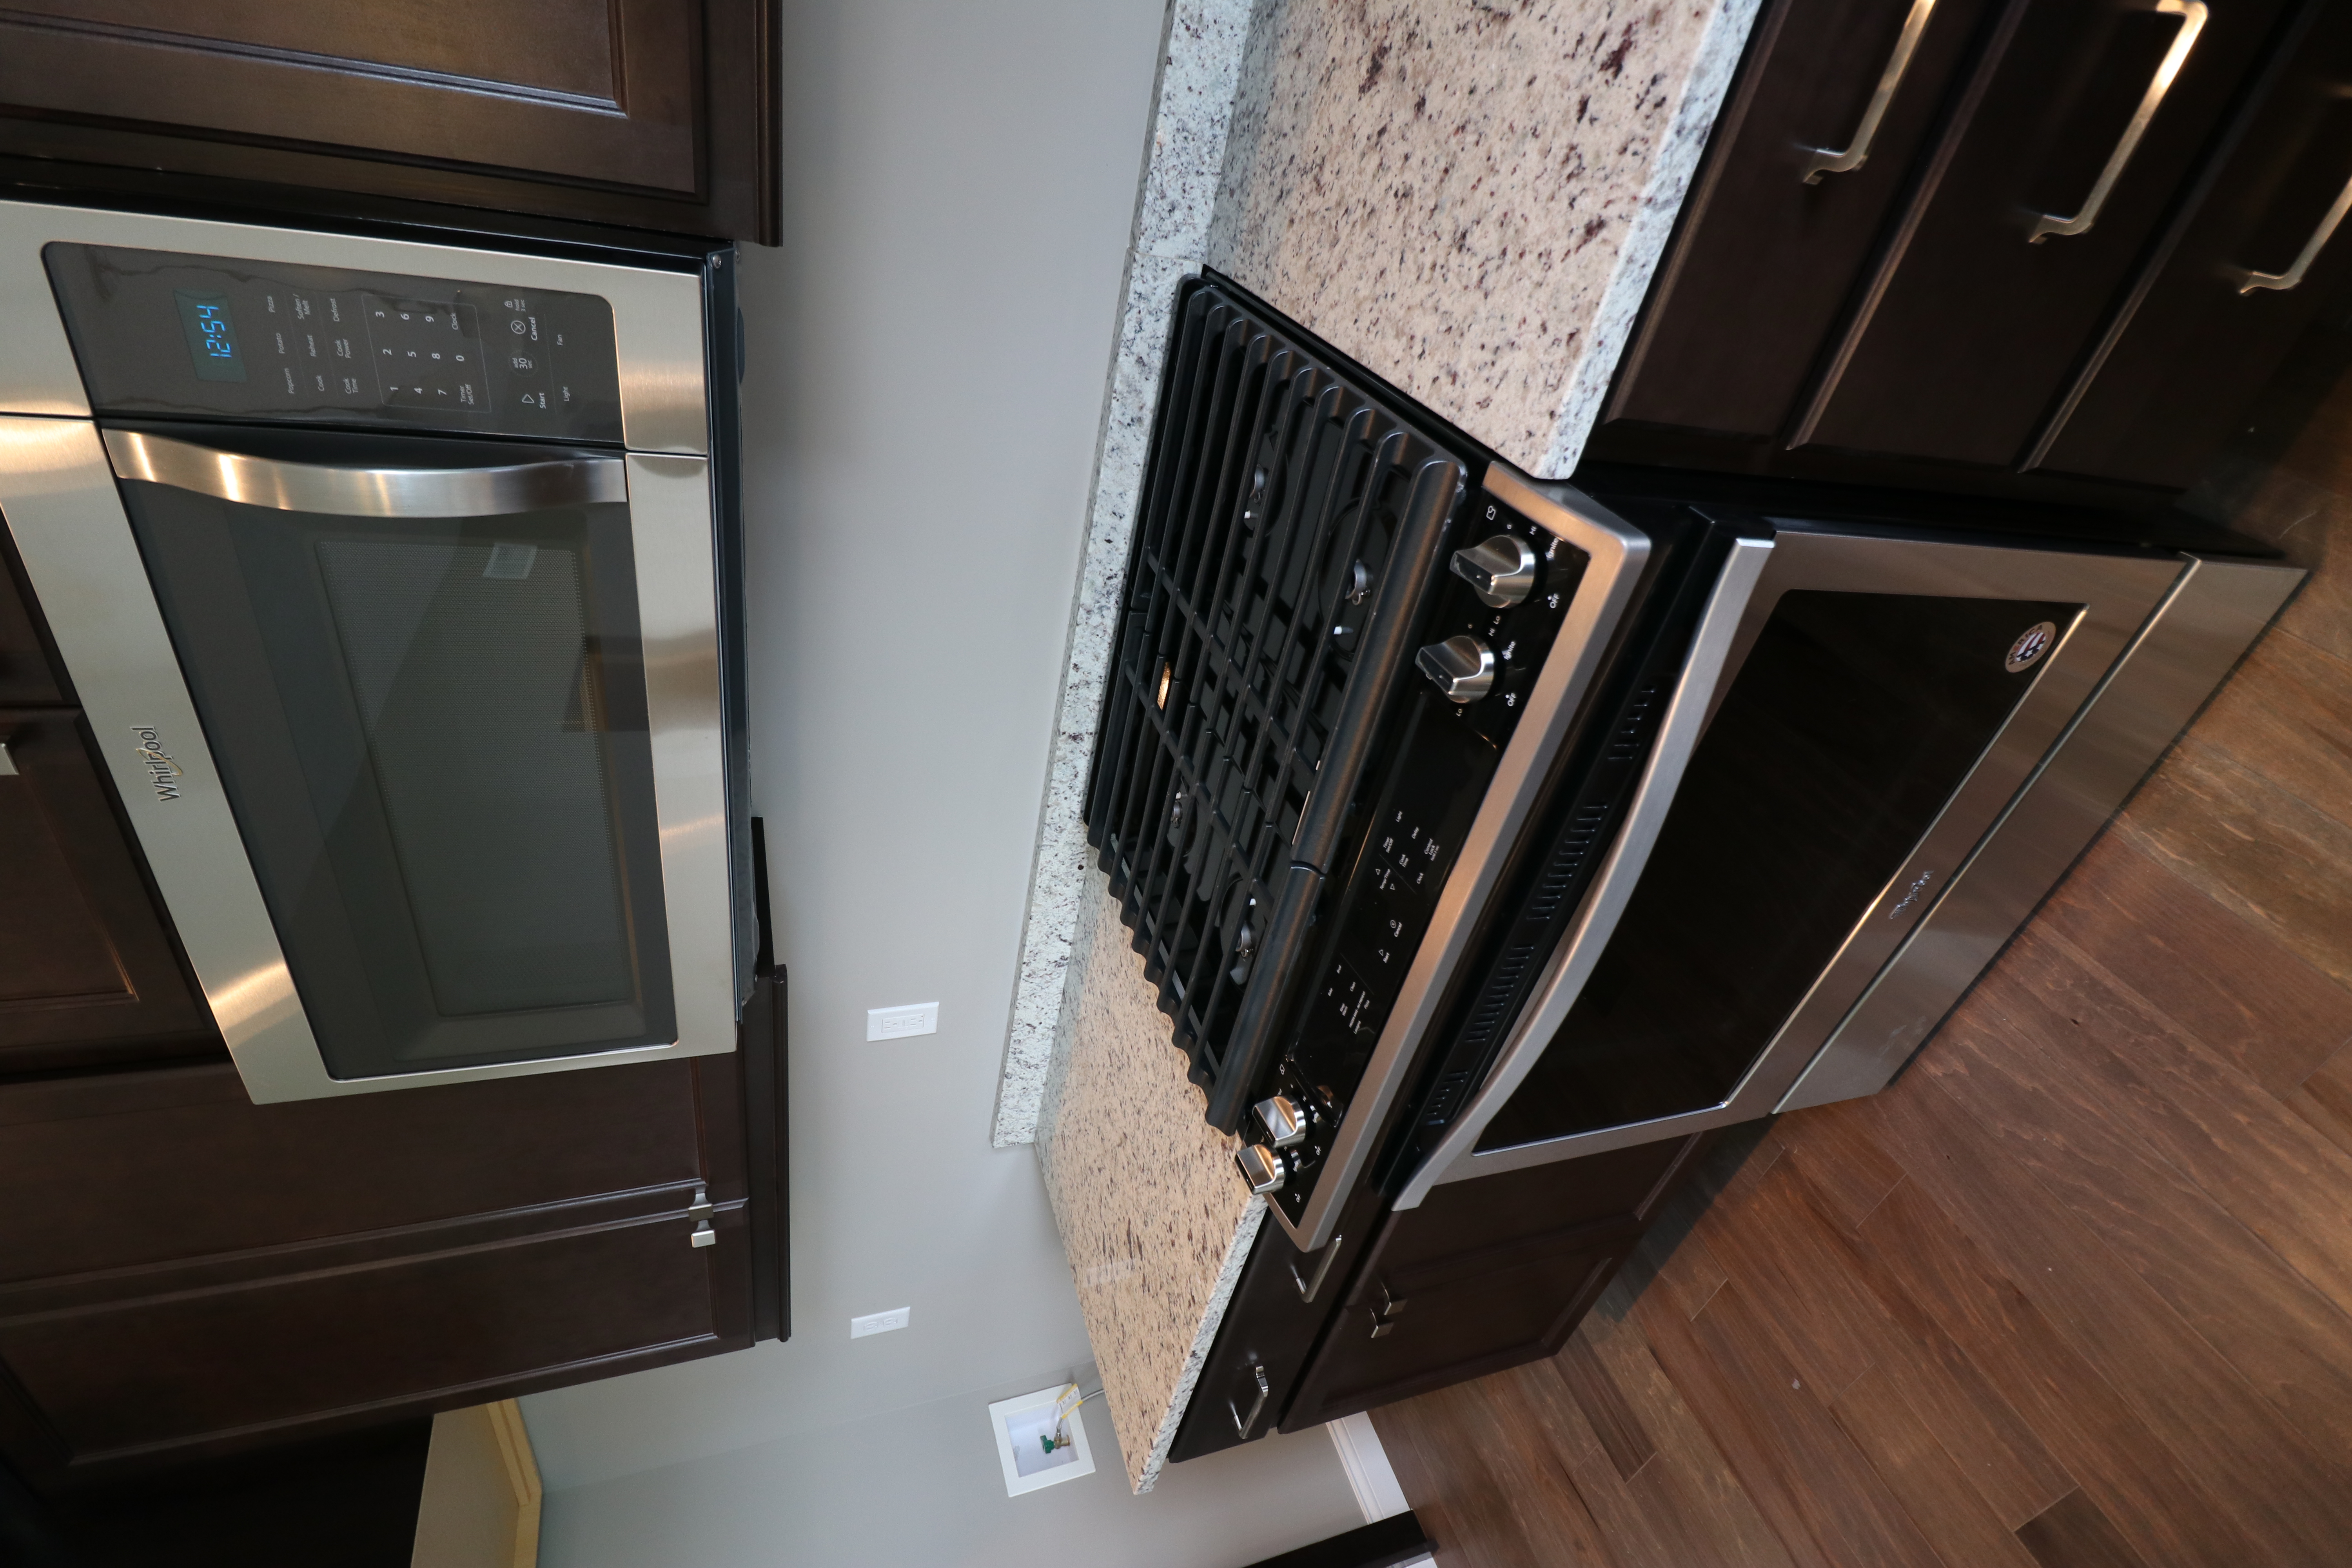 House for sale in the Dunlap peoria area stove_oven